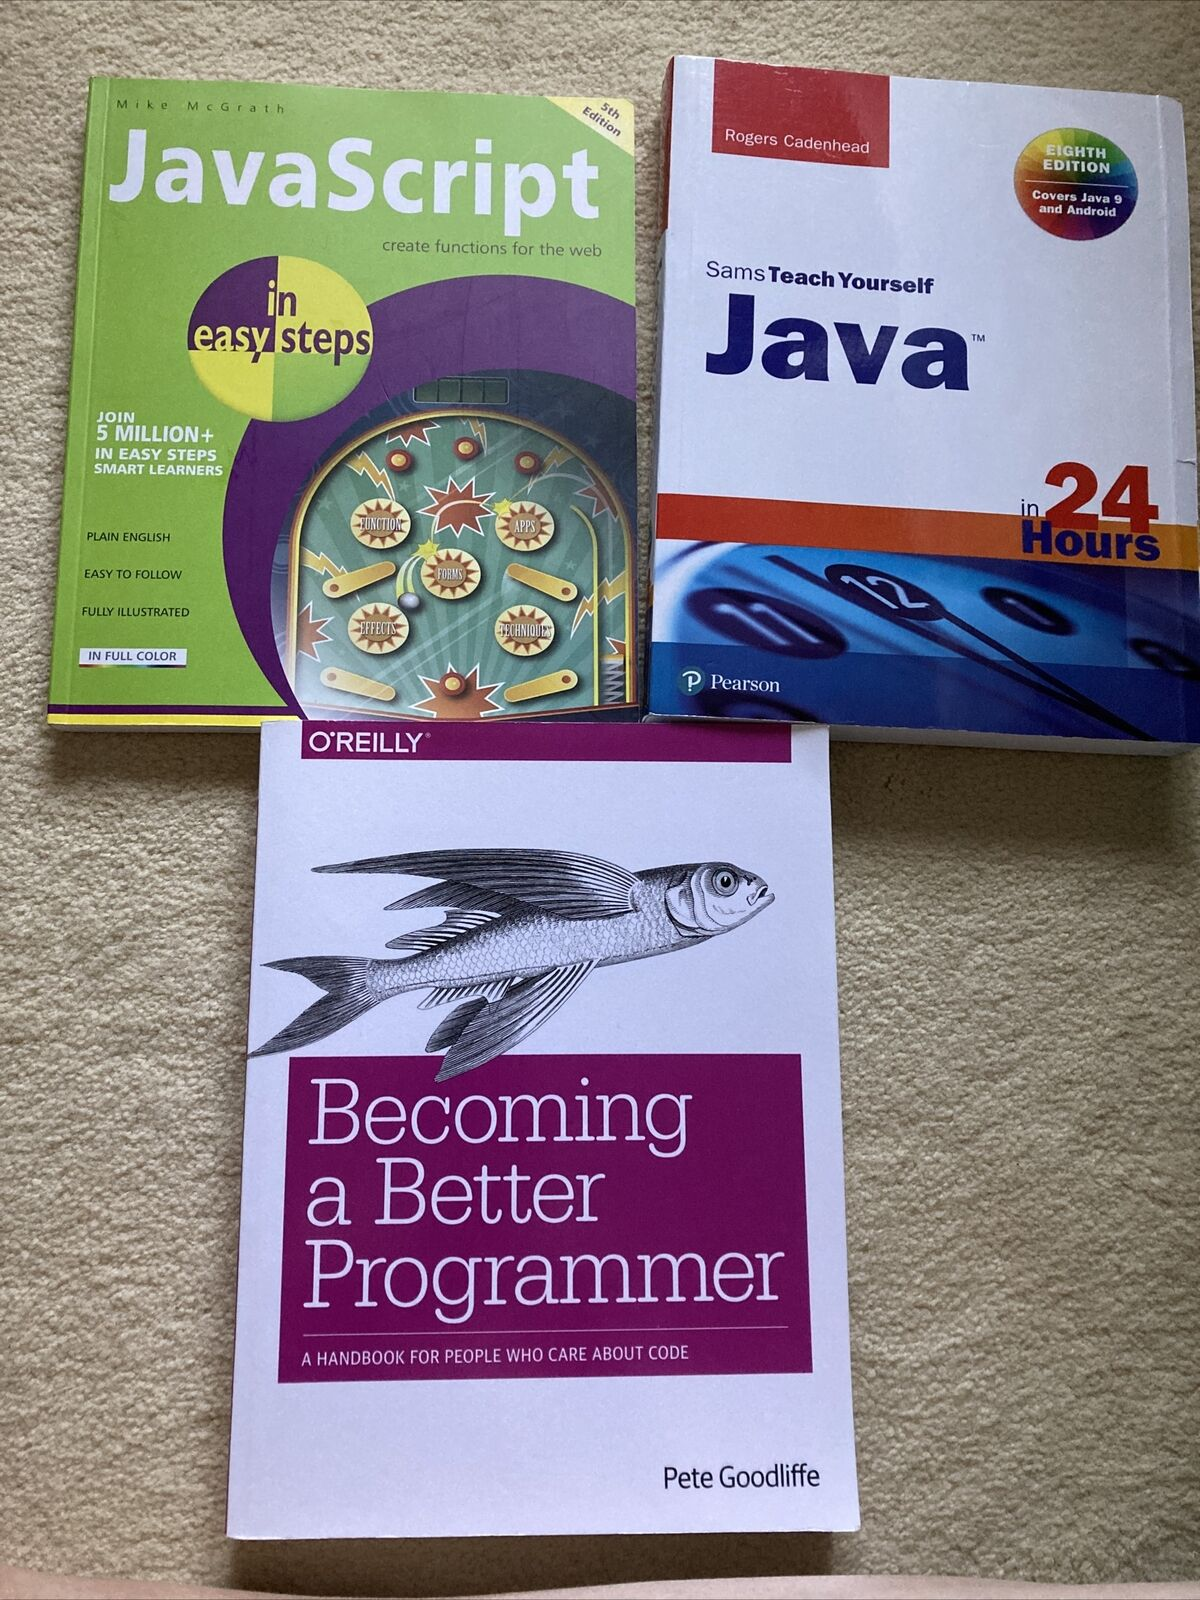 Teach Yourself Java 9 Programming Book Bundle and Android) Very good Condition |